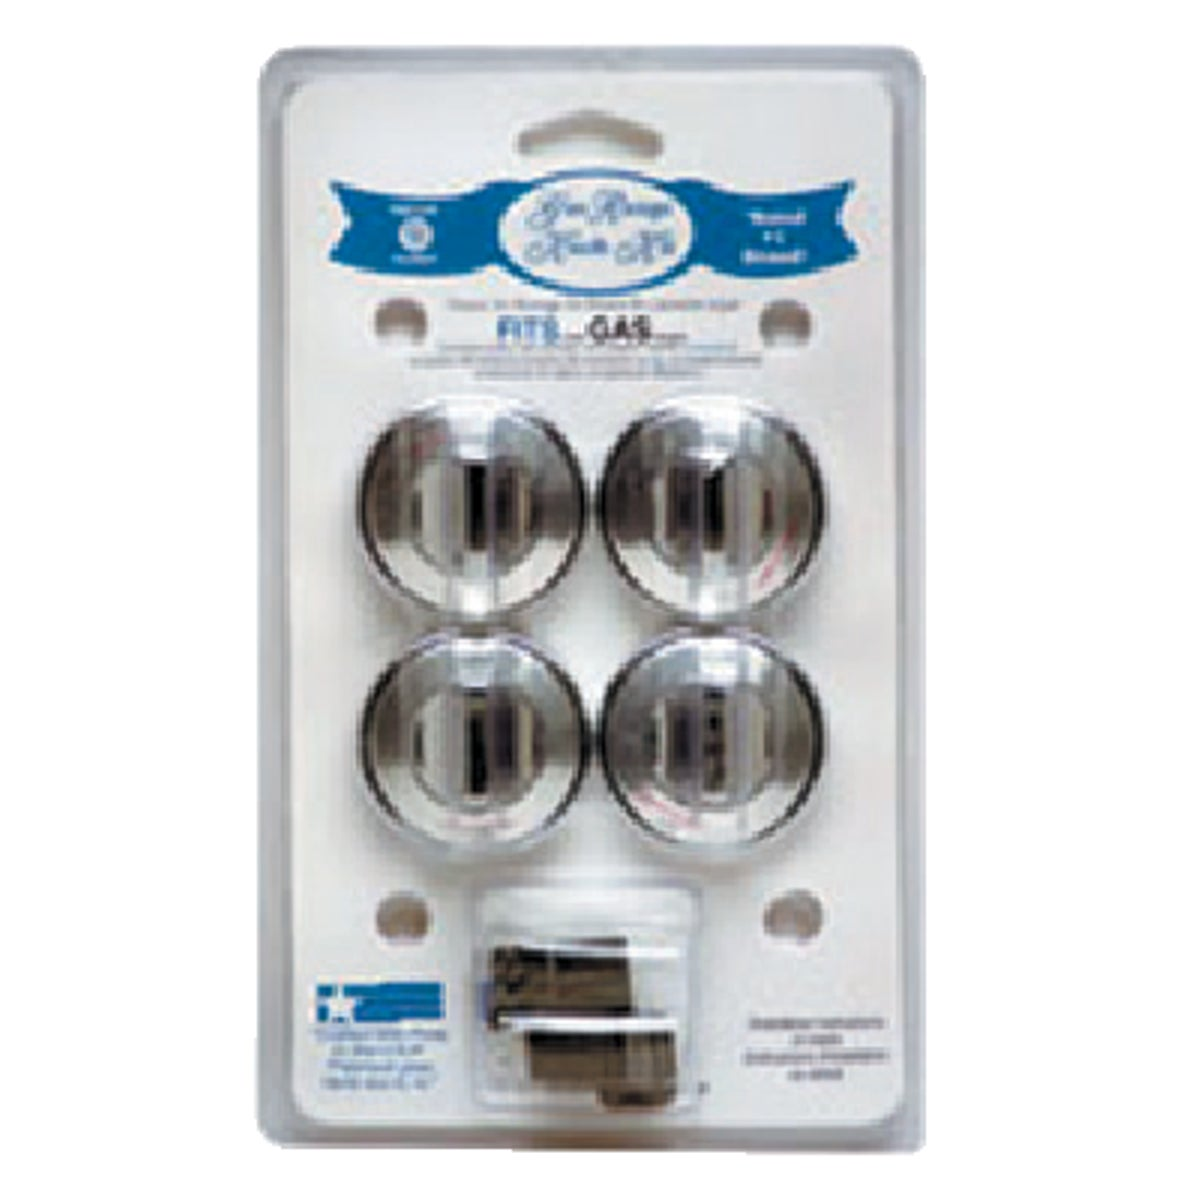 CHROME GAS KNOB - 8224 by Range Kleen Mfg Inc